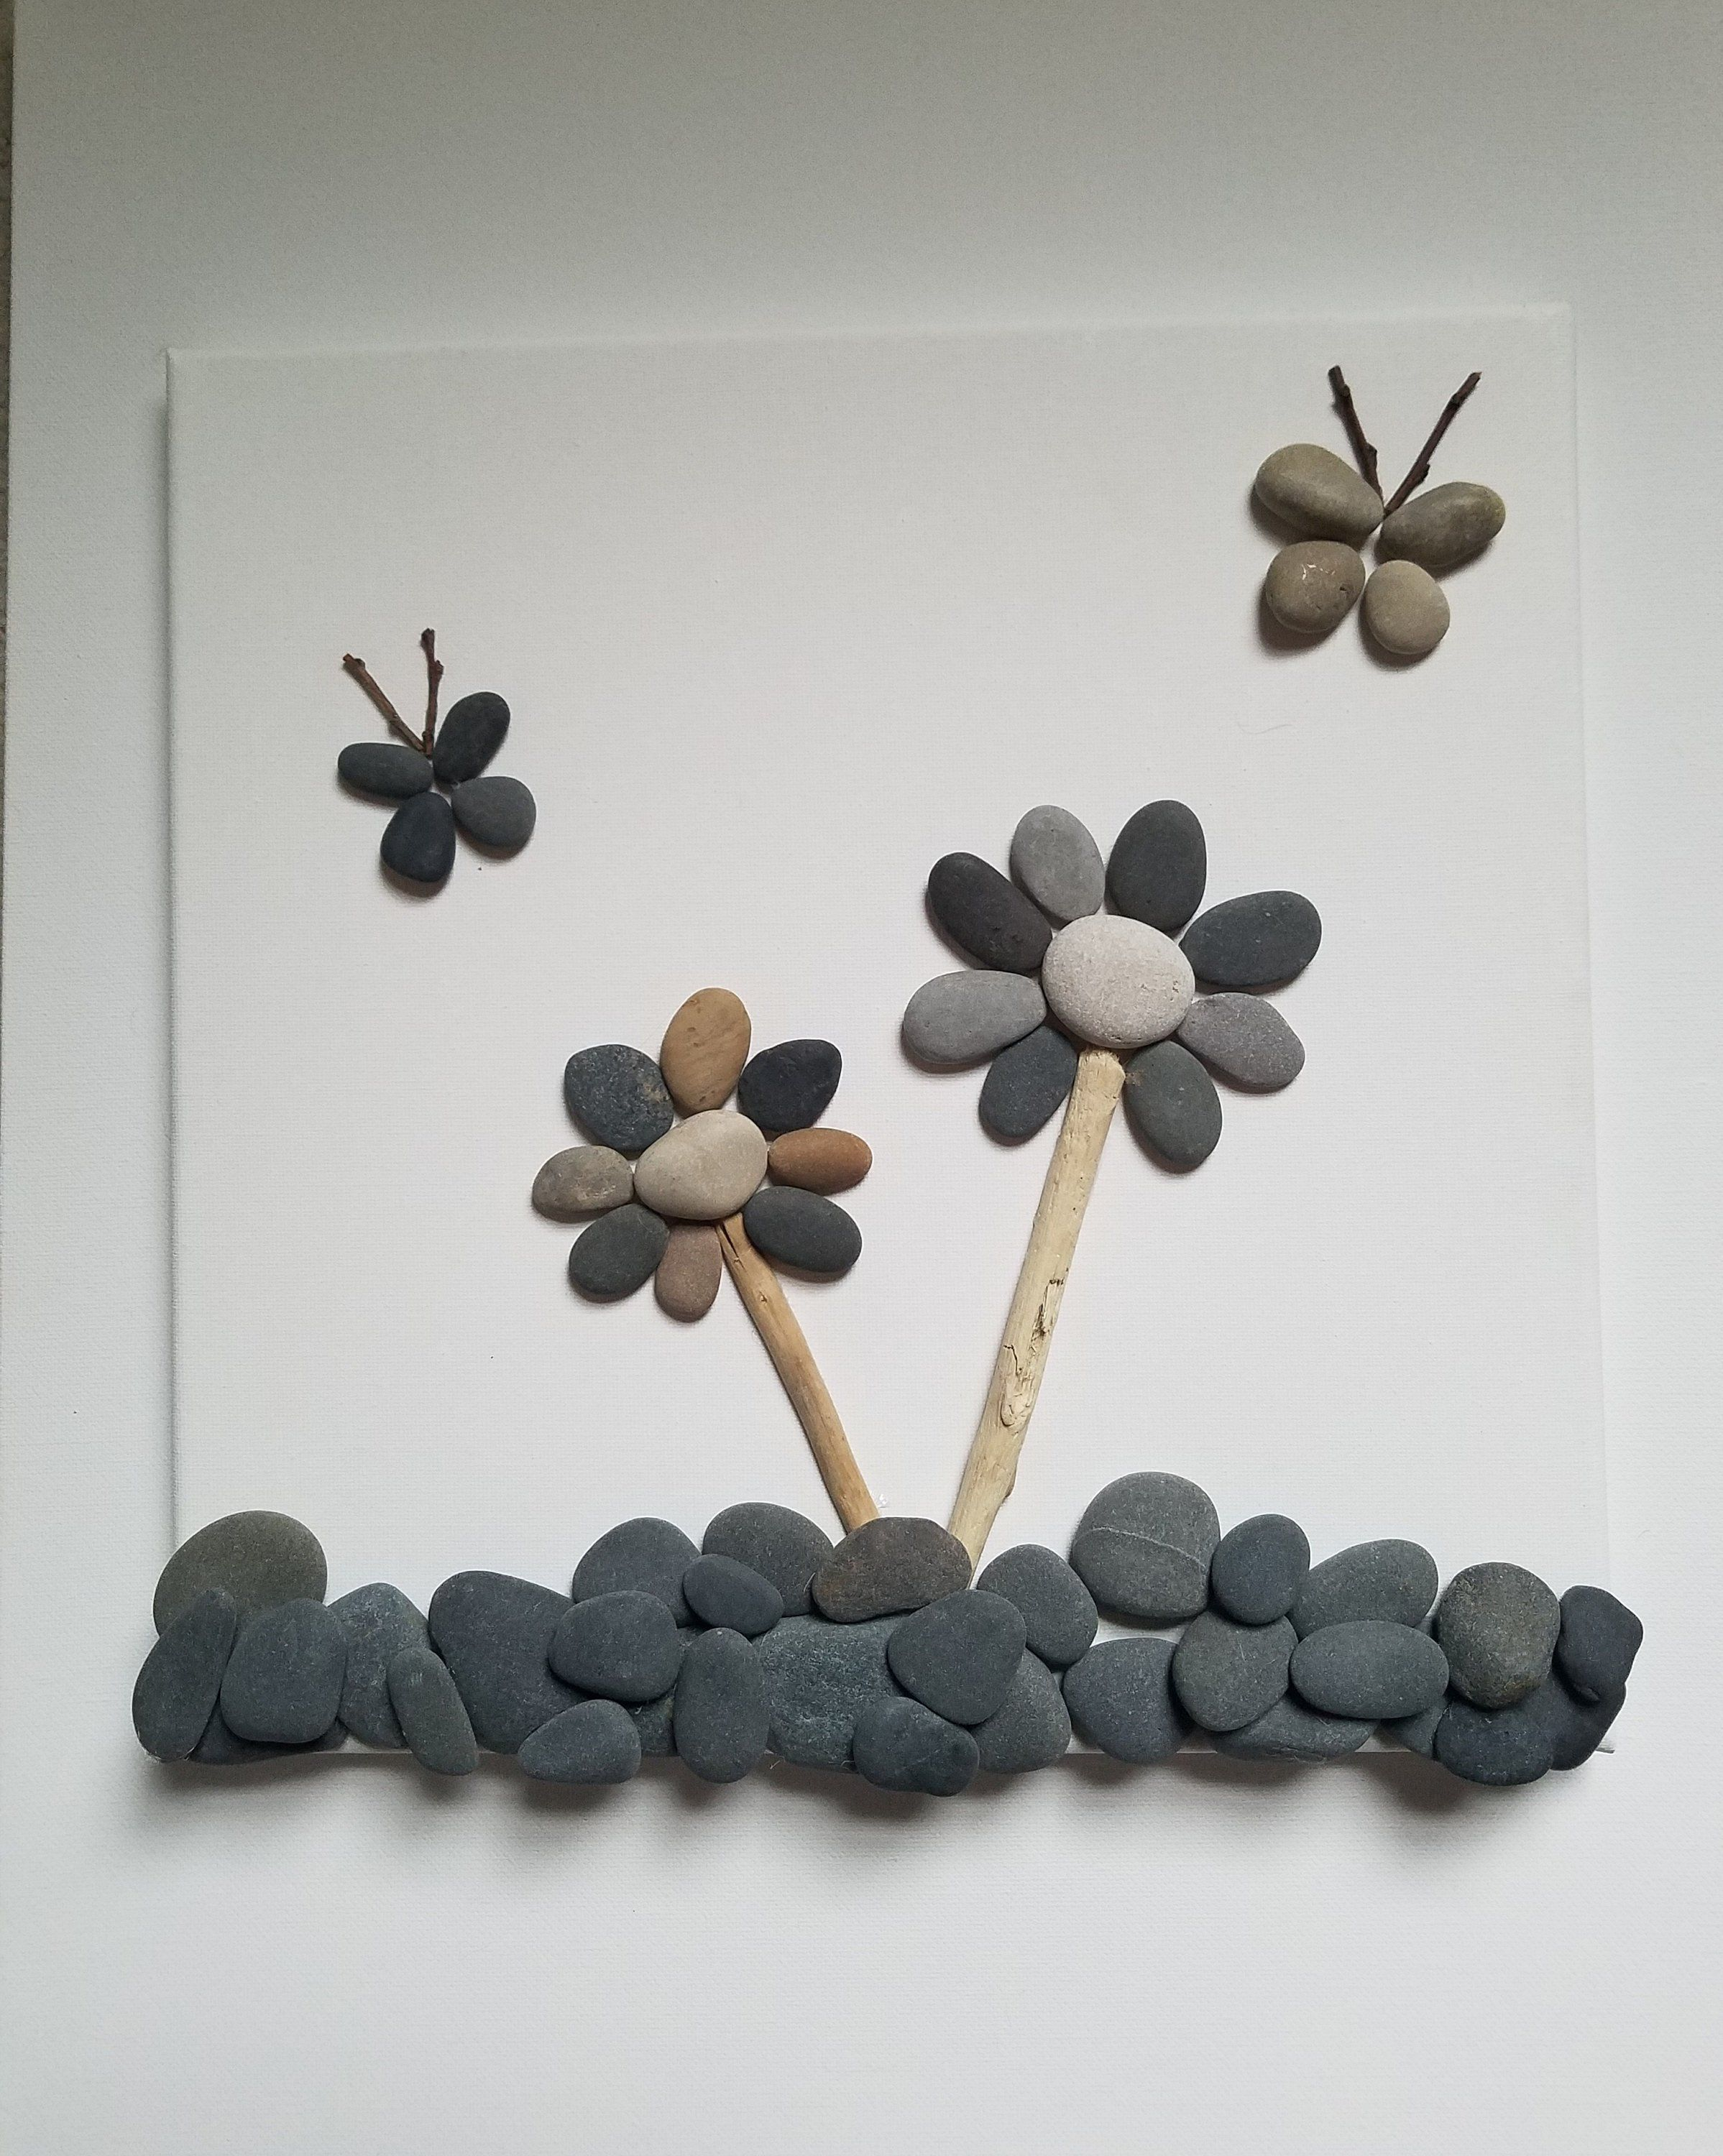 Butterflies And Flowers Pebble Art Home Decor Pebble Art Stone Pictures Pebble Art Stone Crafts